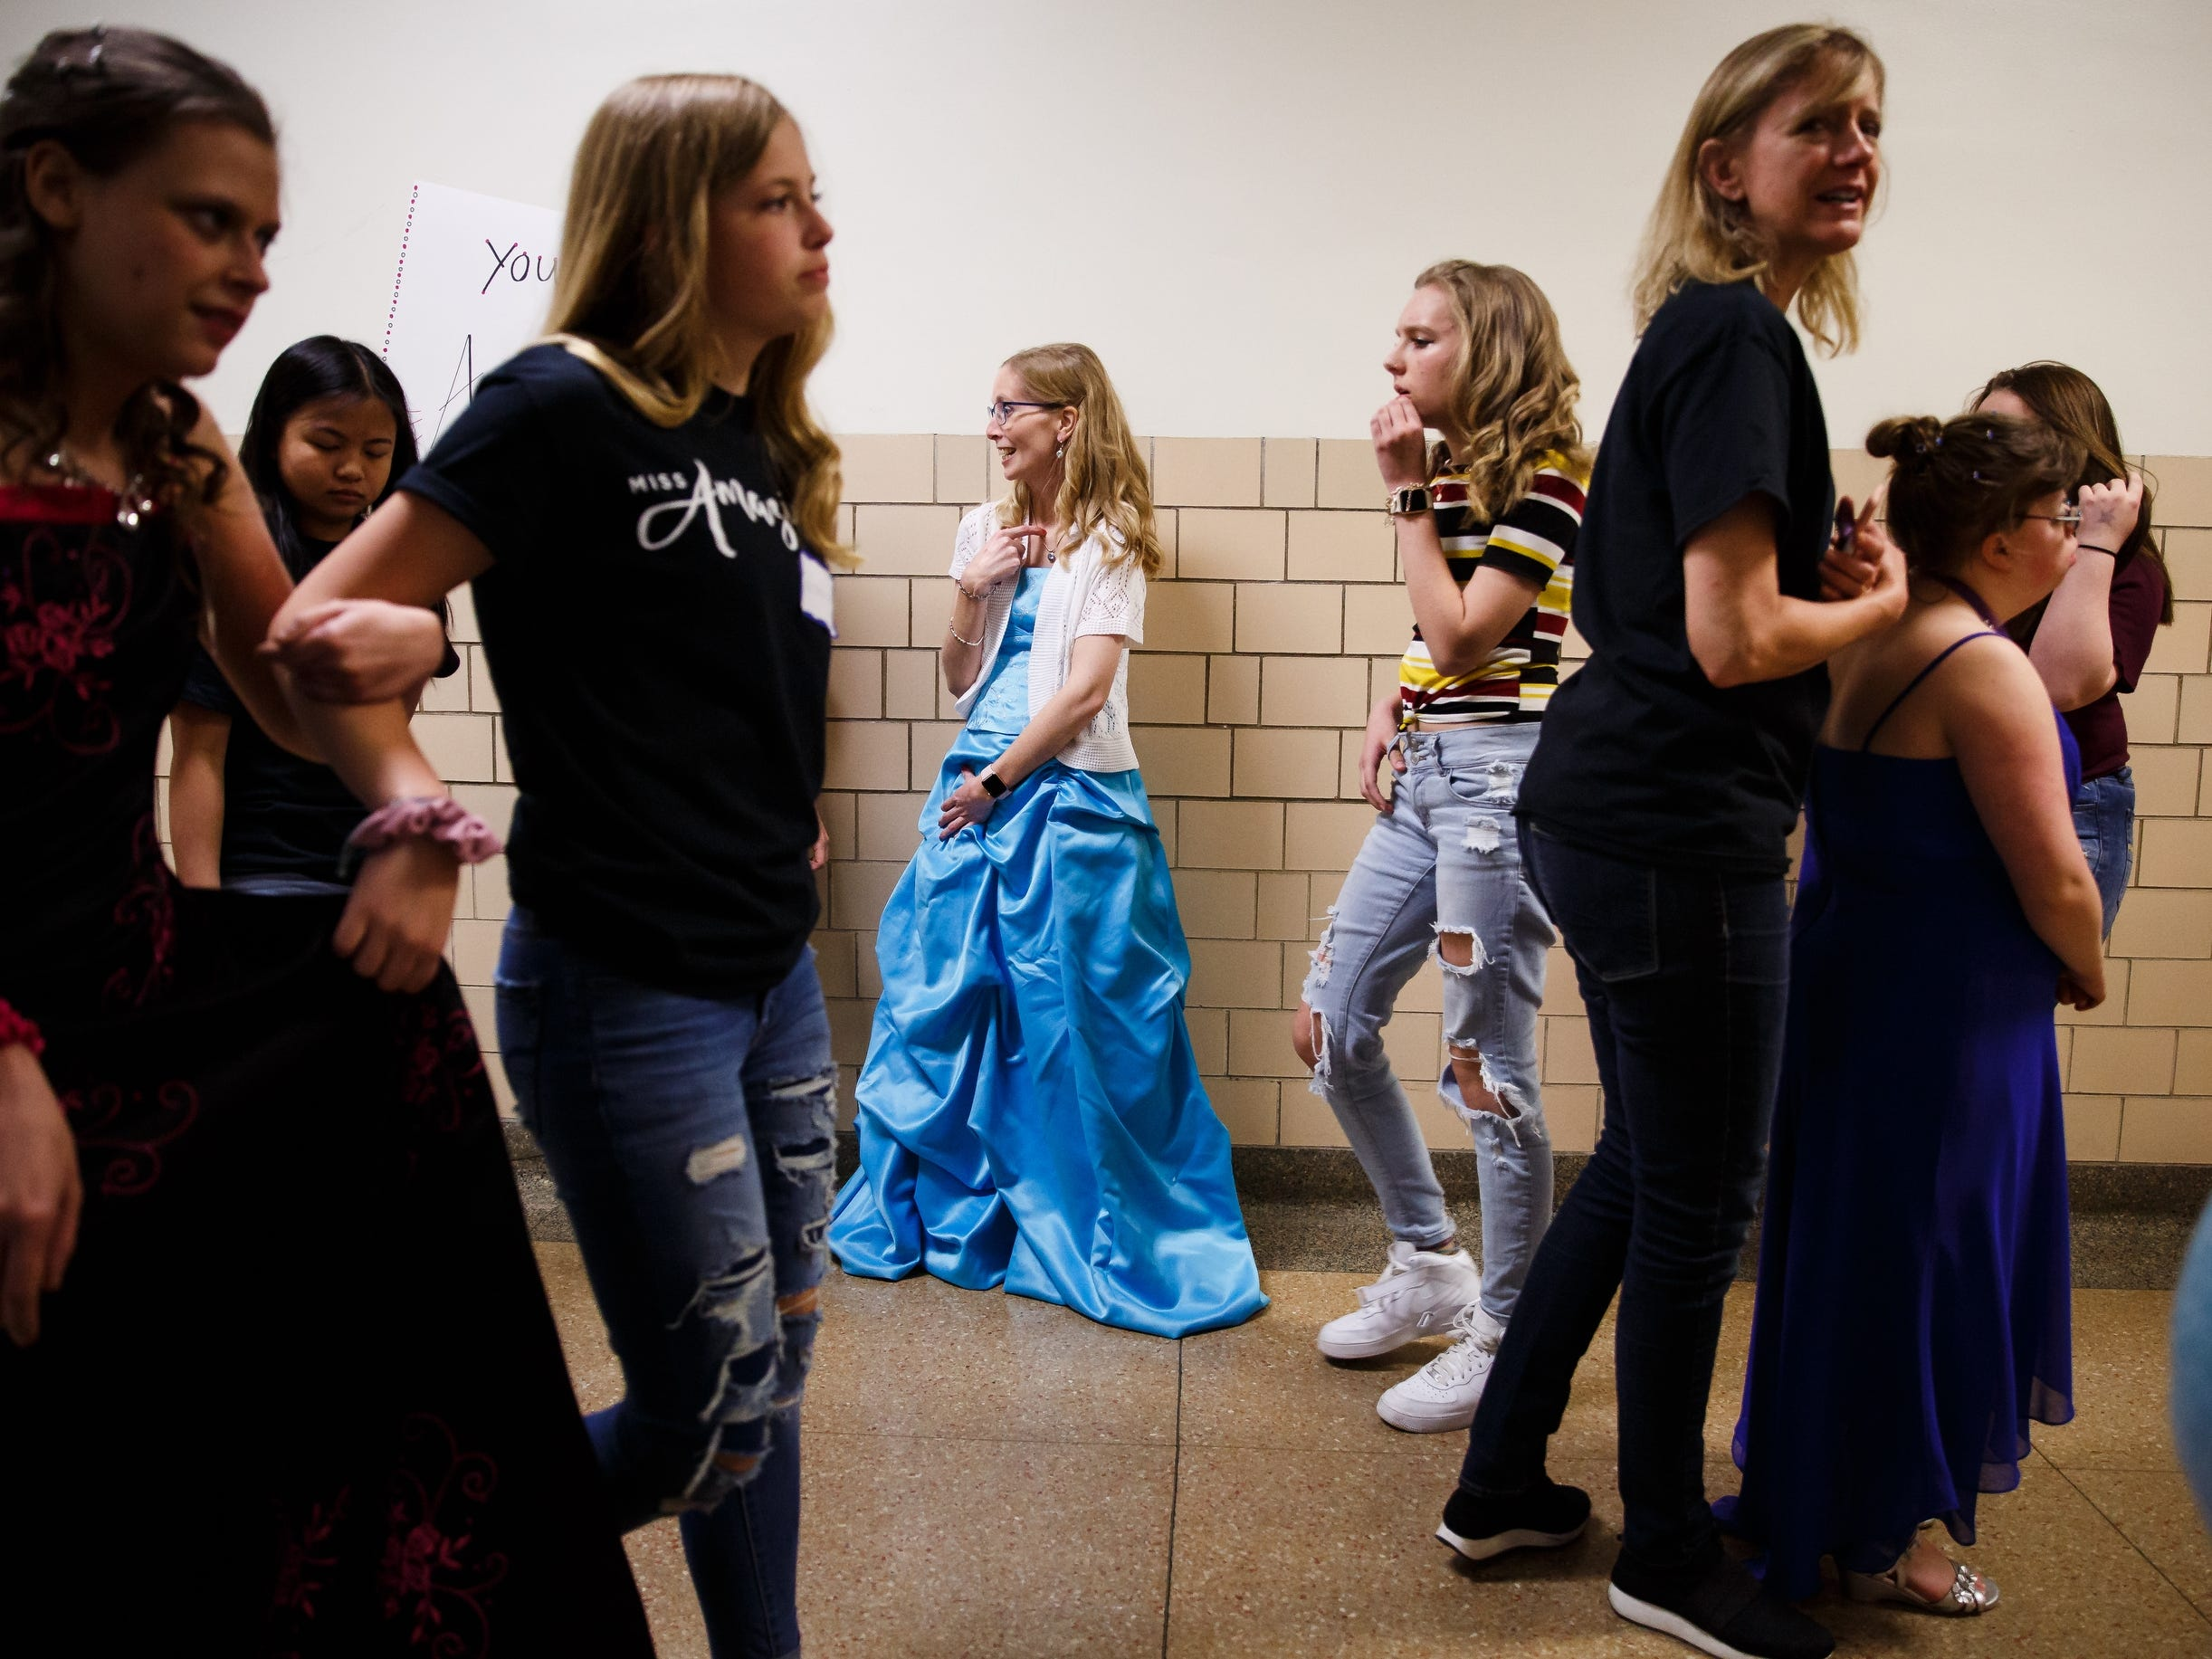 Carla Lahart, 34 of Ankeny waits in the hallway for winners to be announced during the 2019 Miss Amazing pageant at Franklin Jr. High School on Saturday, April 13, 2019, in Des Moines.